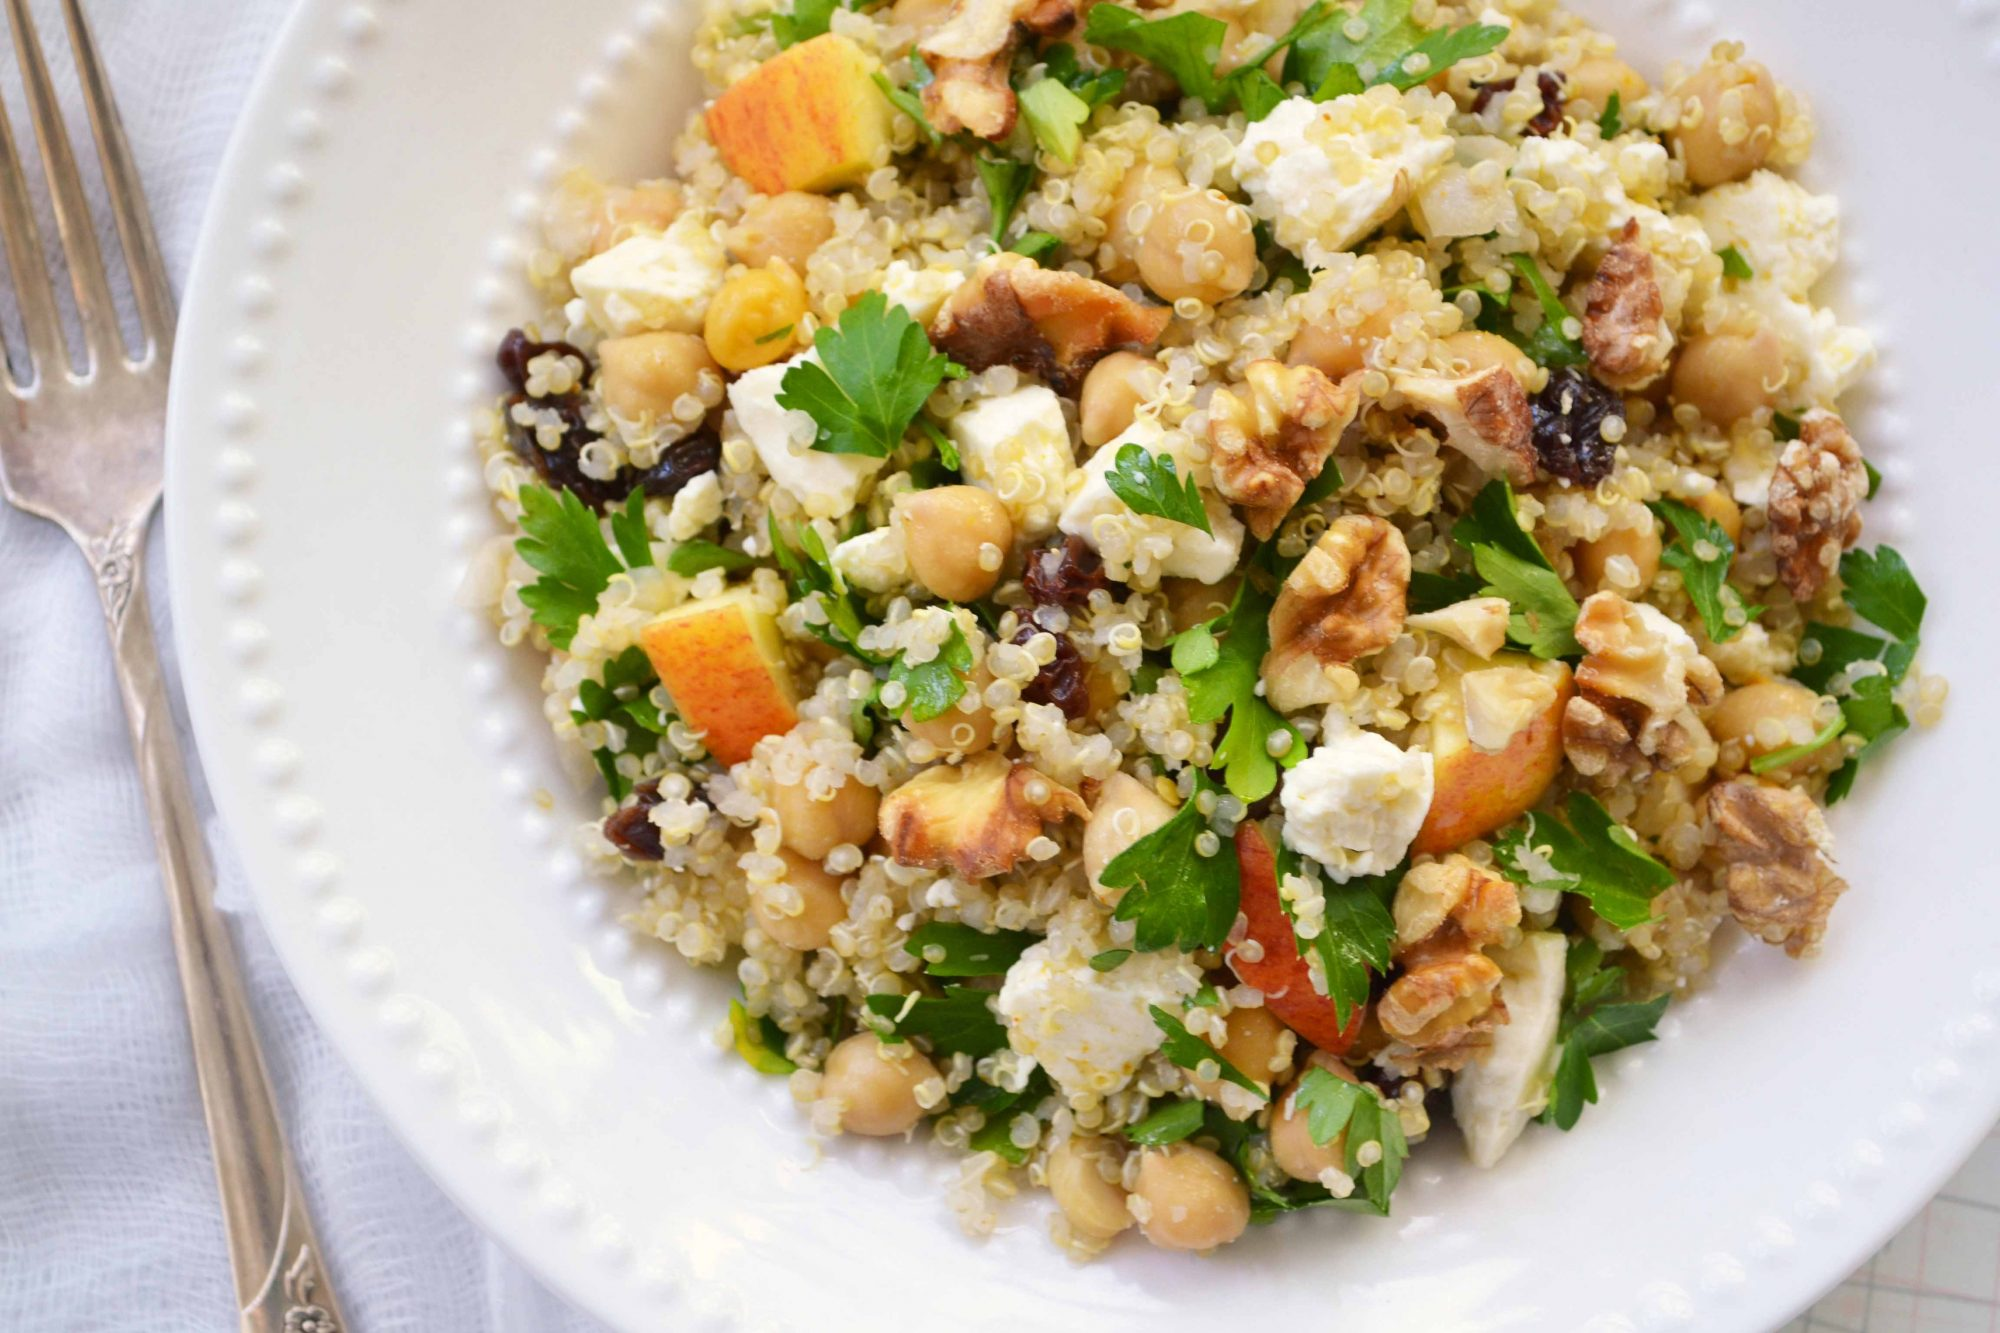 Quinoa salad w apples and feta Quinoa Salad with Chickpeas, Feta and Apples